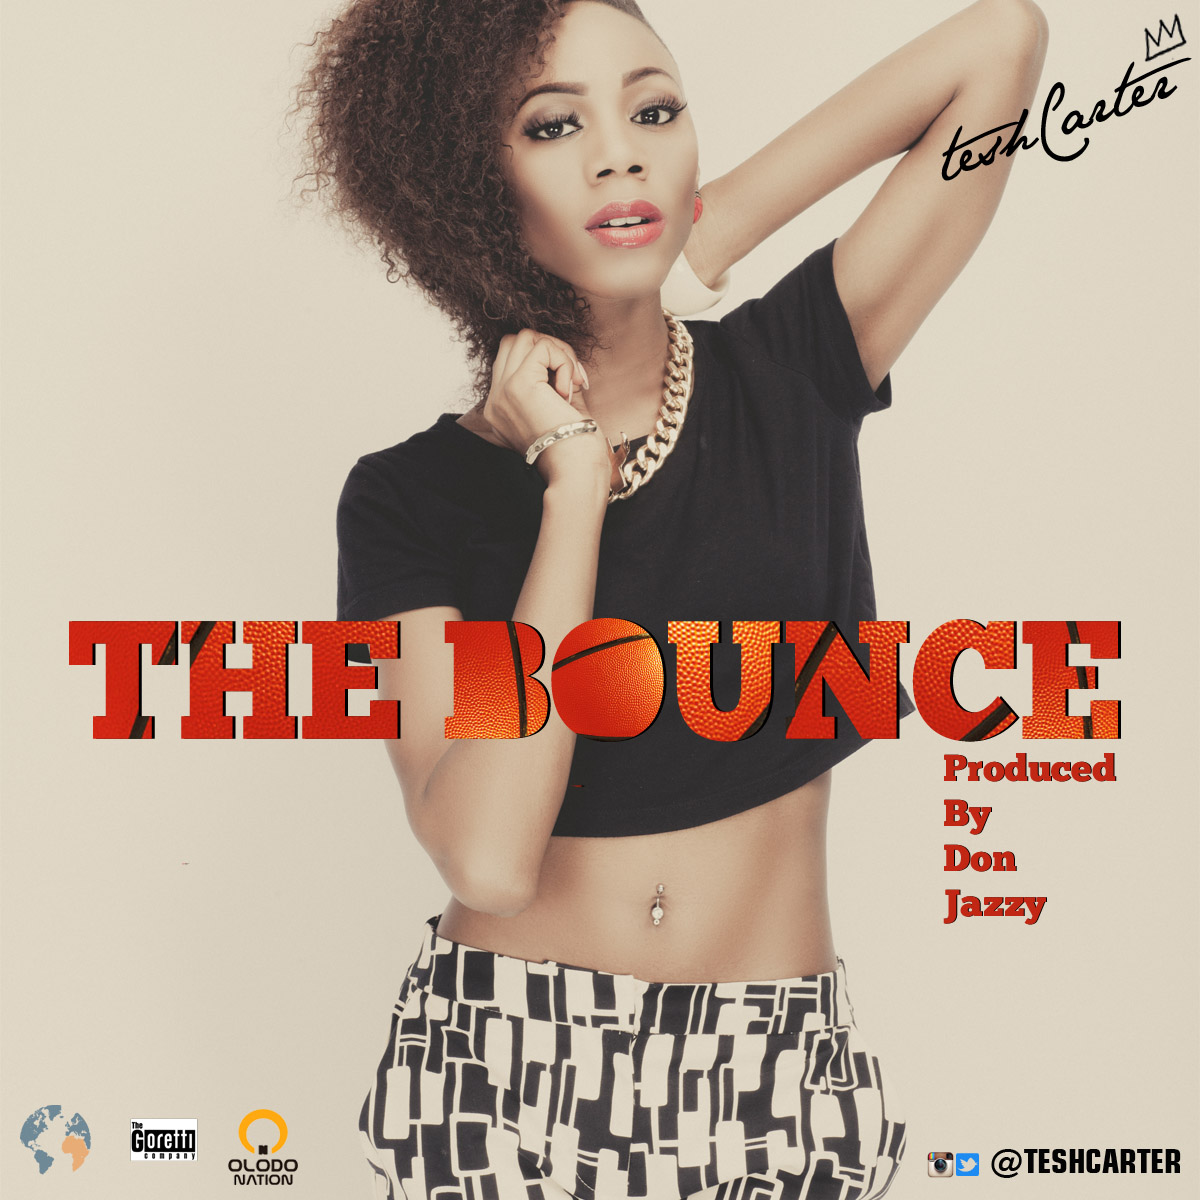 Tesh Carter - The Bounce Single Cover